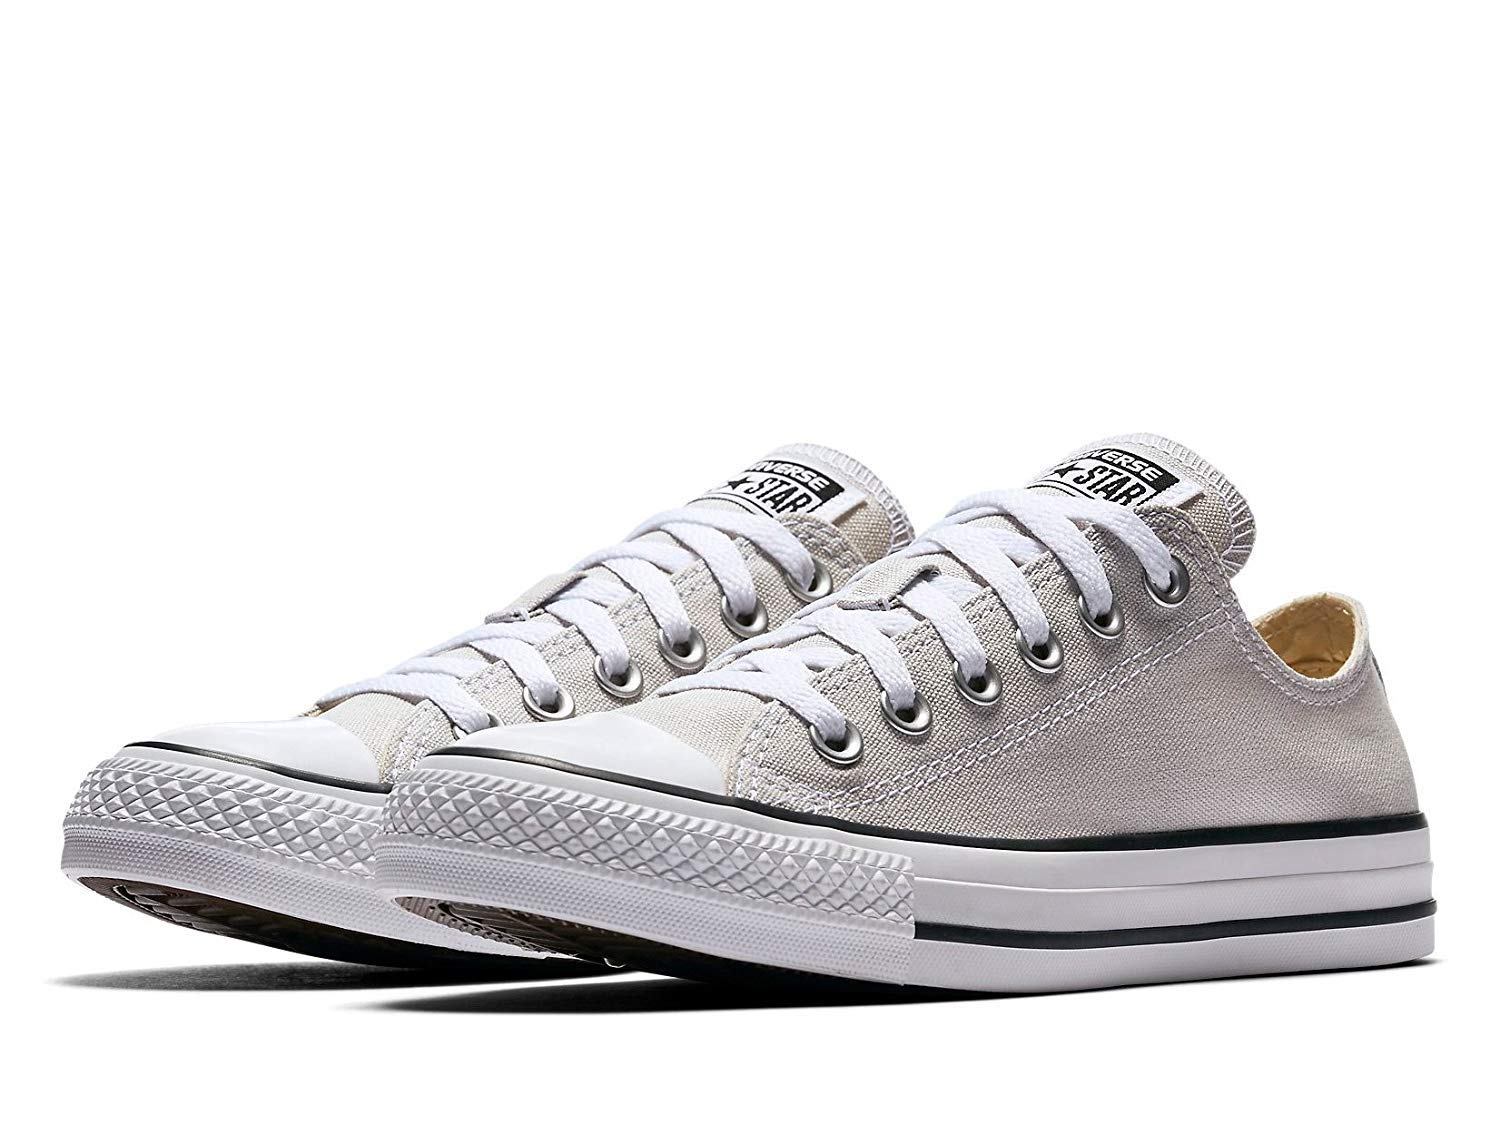 97e23c46832 Galleon - Converse Unisex Chuck Taylor All Star Ox Low Top Classic Sneakers